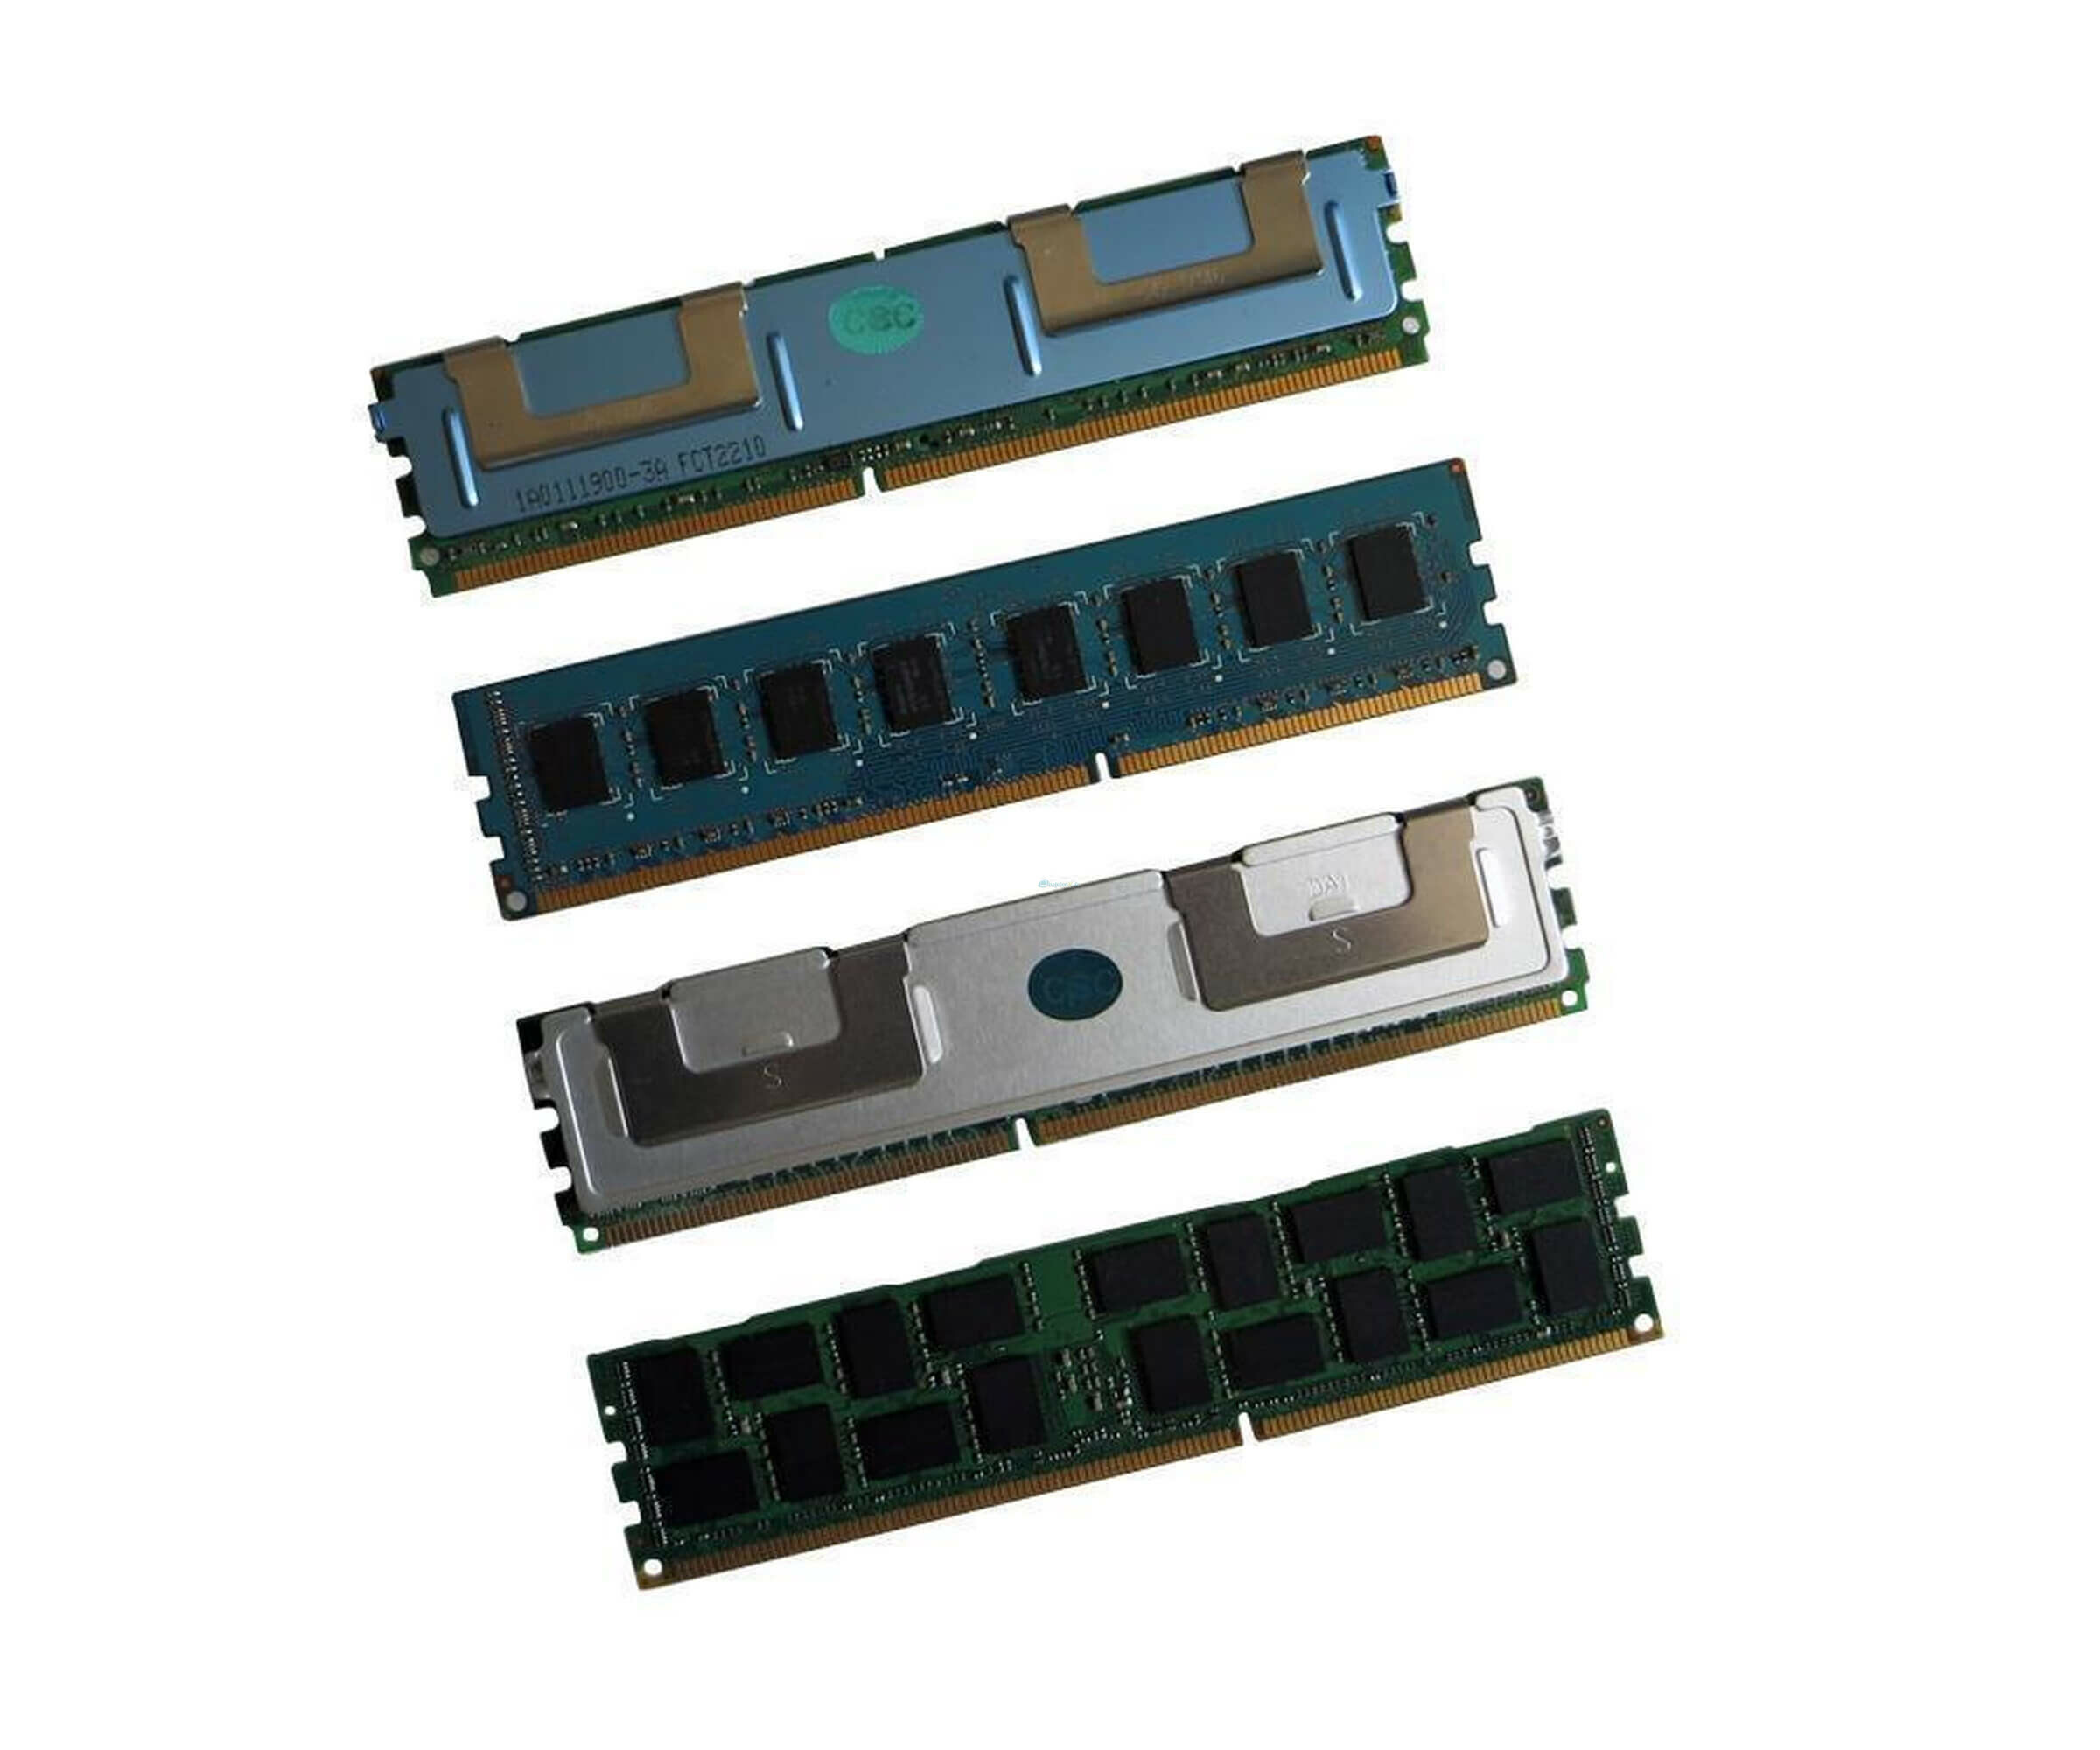 Kingston - KTD-PE313ES/2G Memory - 2 GB - DIMM 240-PIN - PC-10600 - DDR3-SDRAM